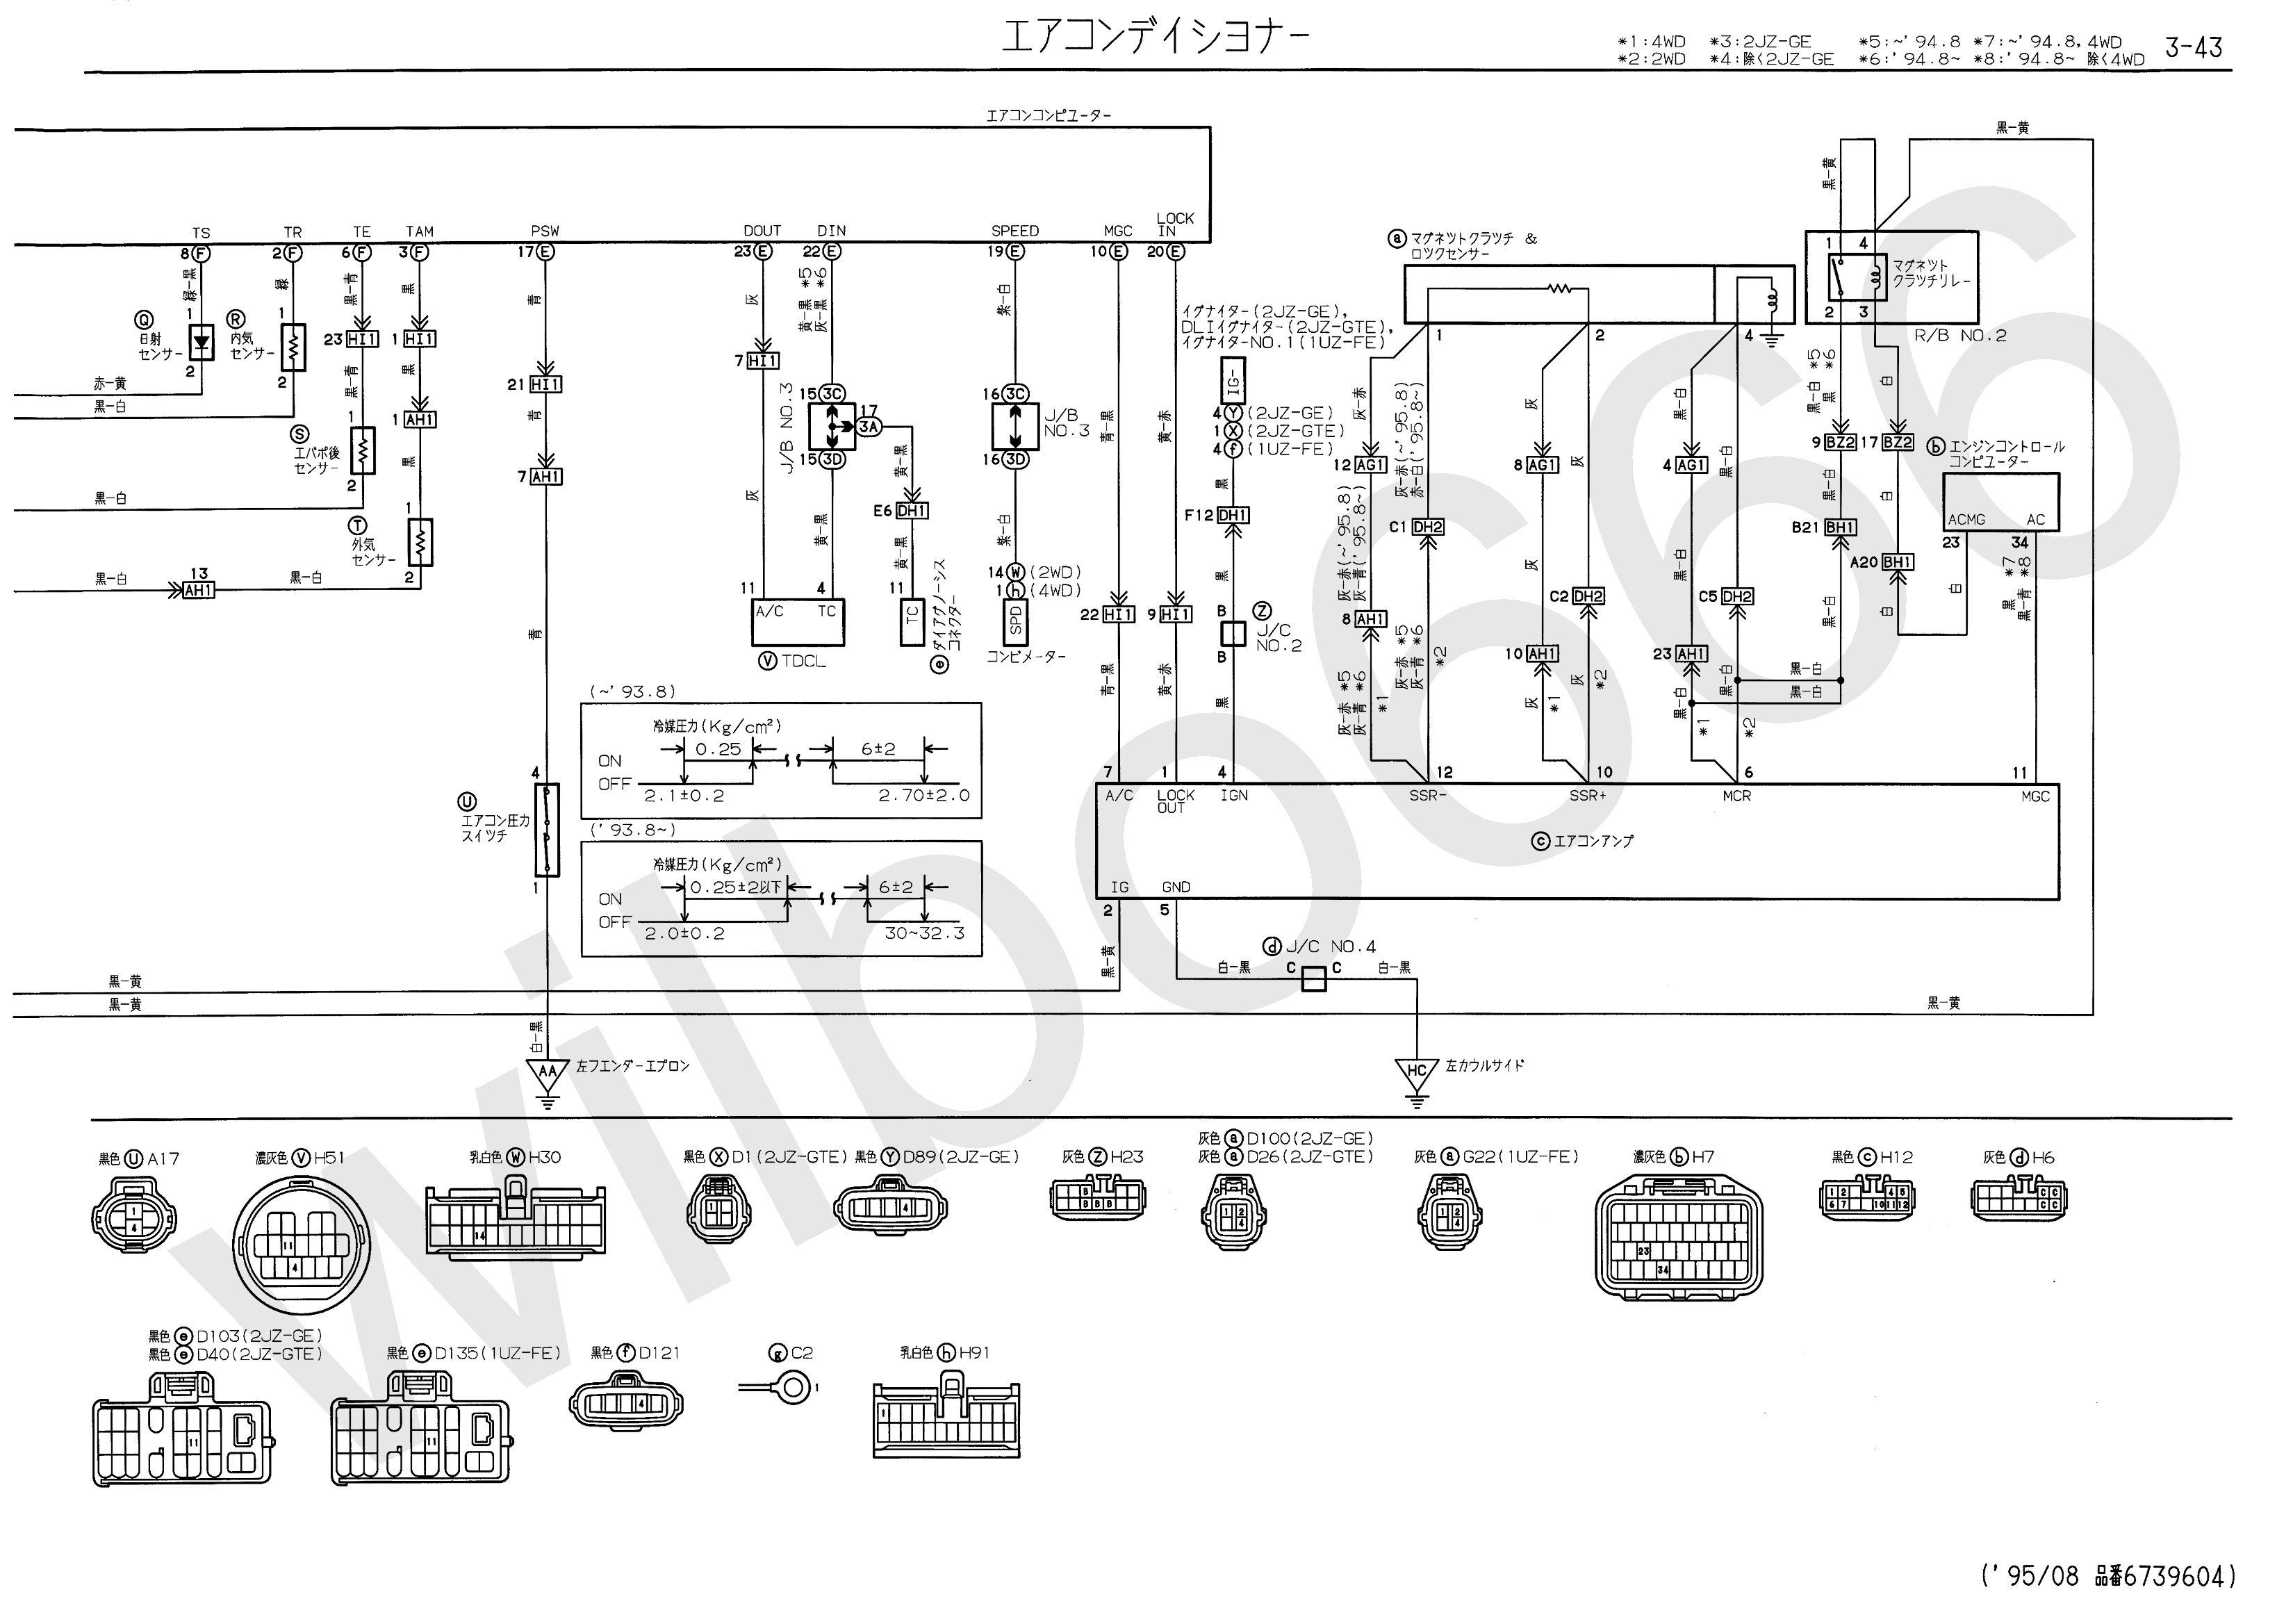 Ac Wiring Diagram Ls Swap Ls1 Diagrams Unit Libraryjzs147 Toyota Aristo 2jz Gte Nsw U0026 Sta